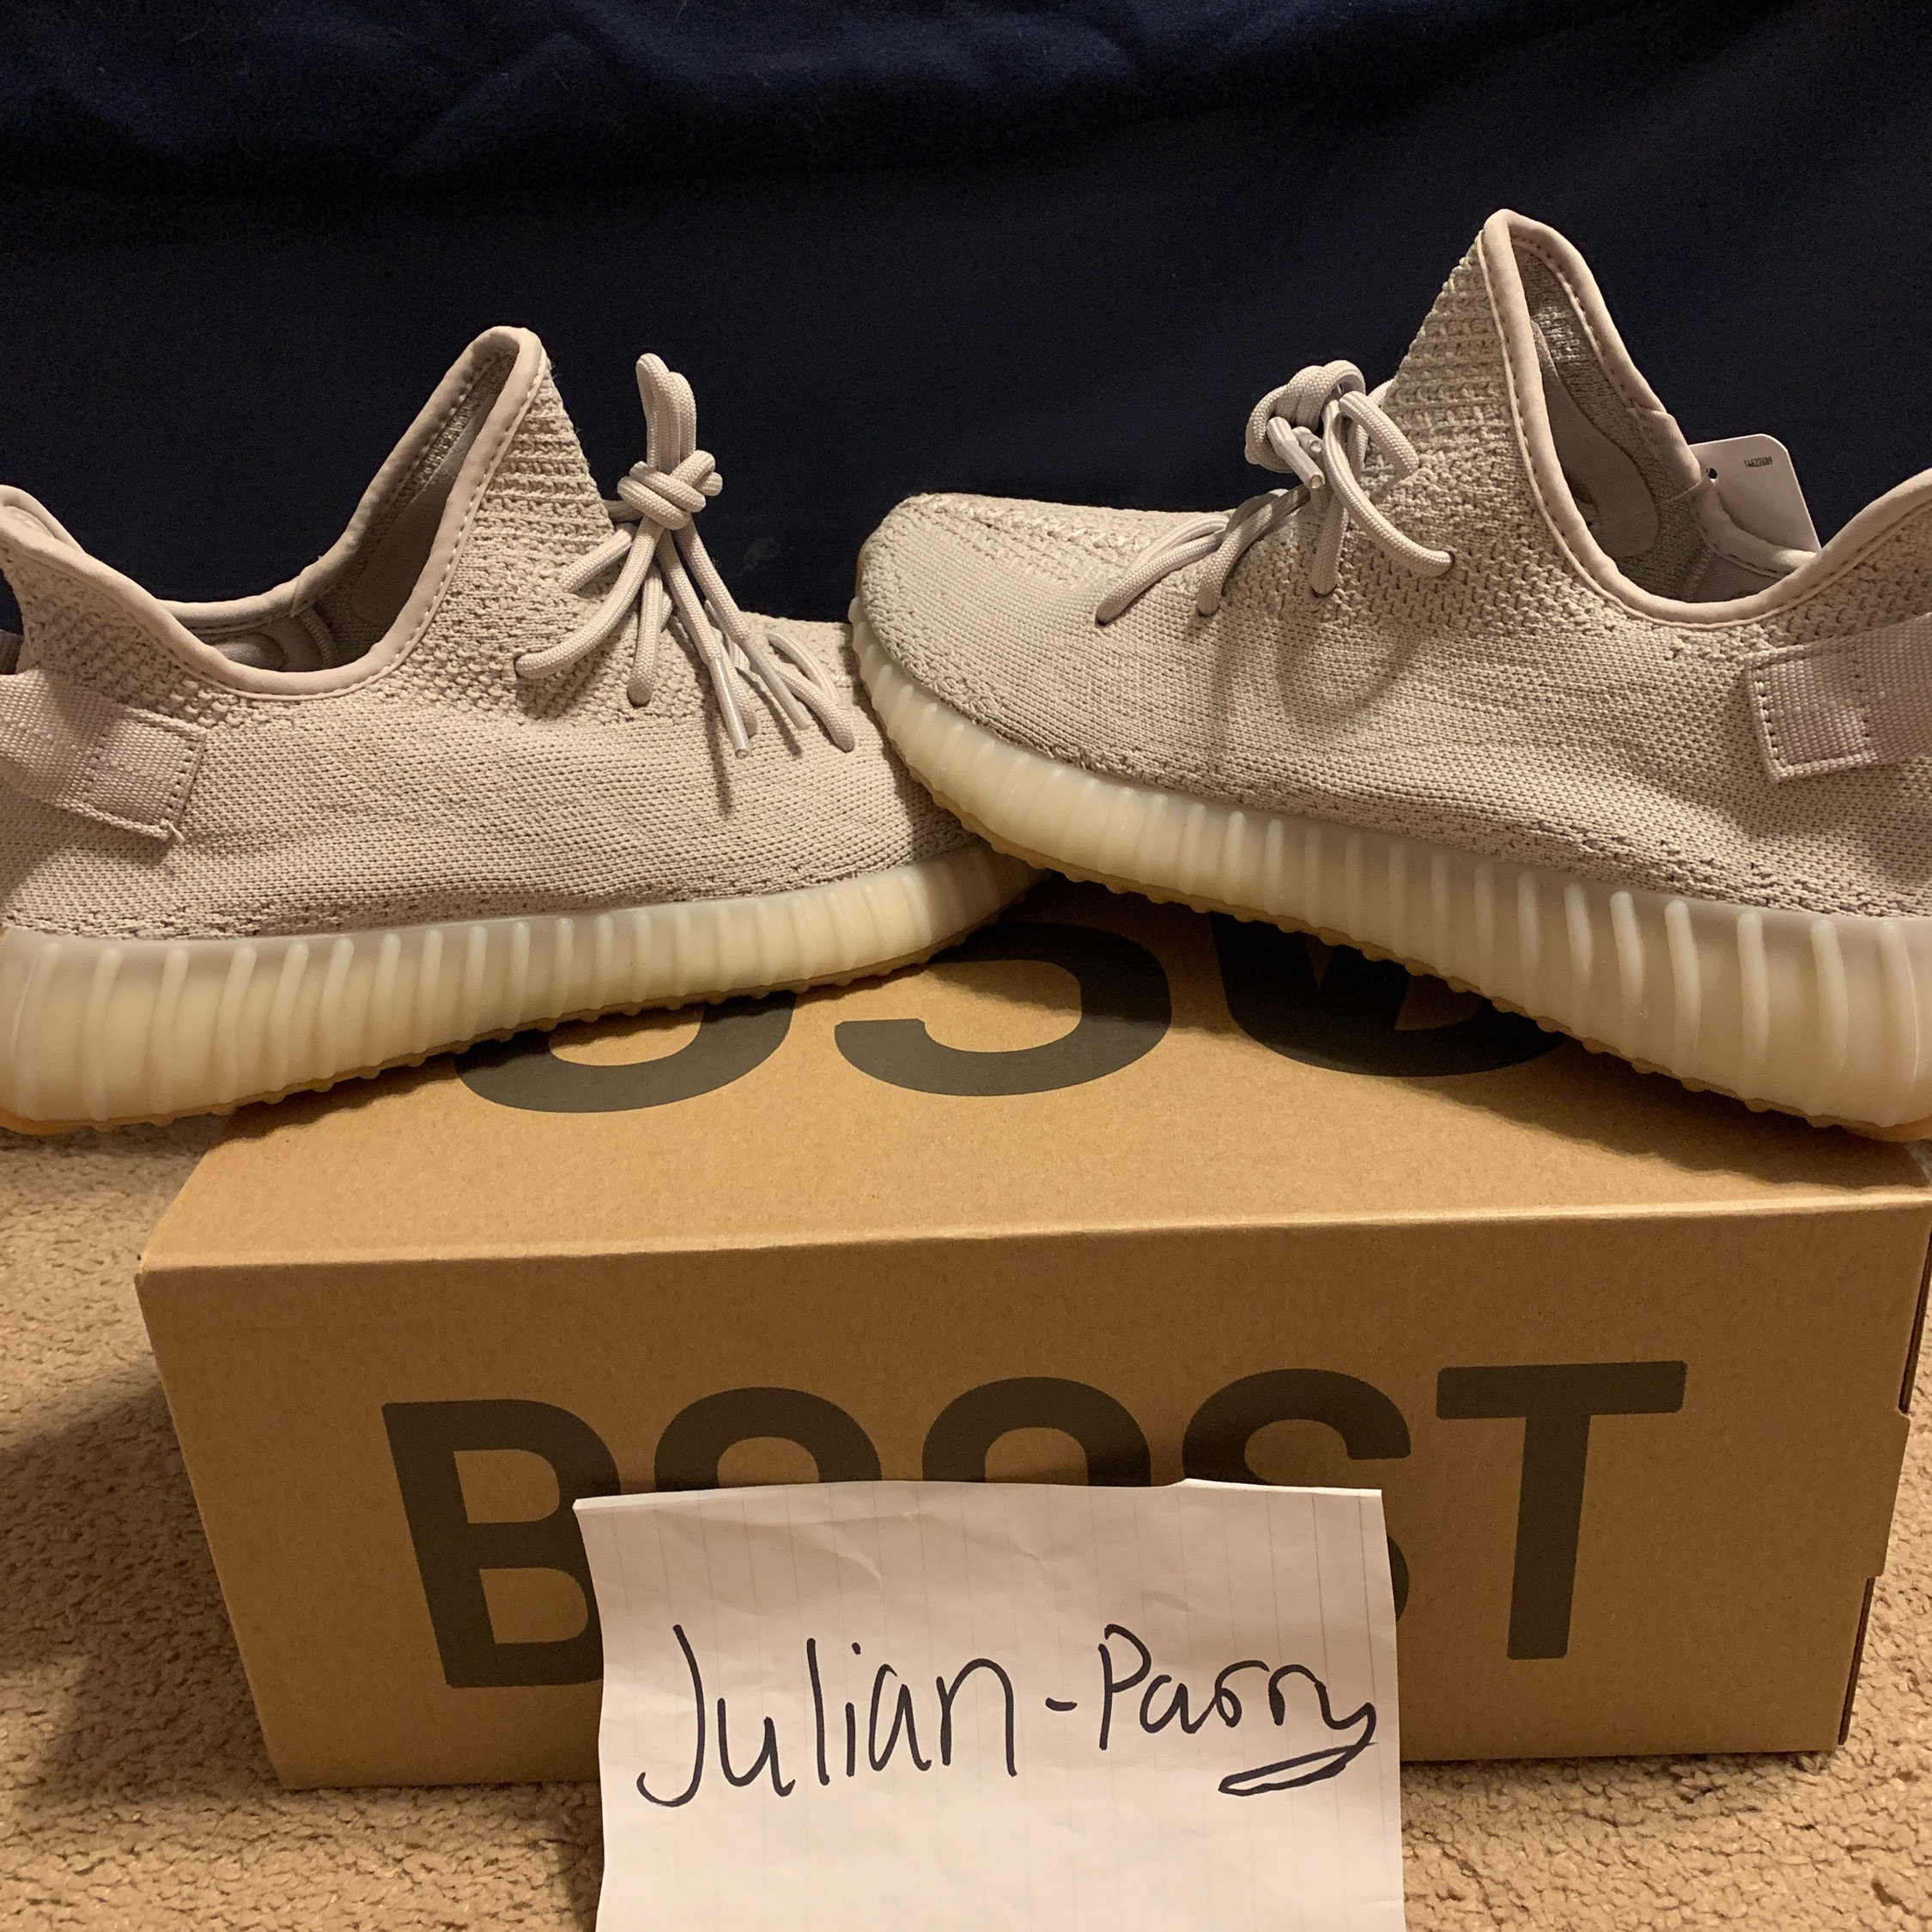 yeezy boost moonrock legit check